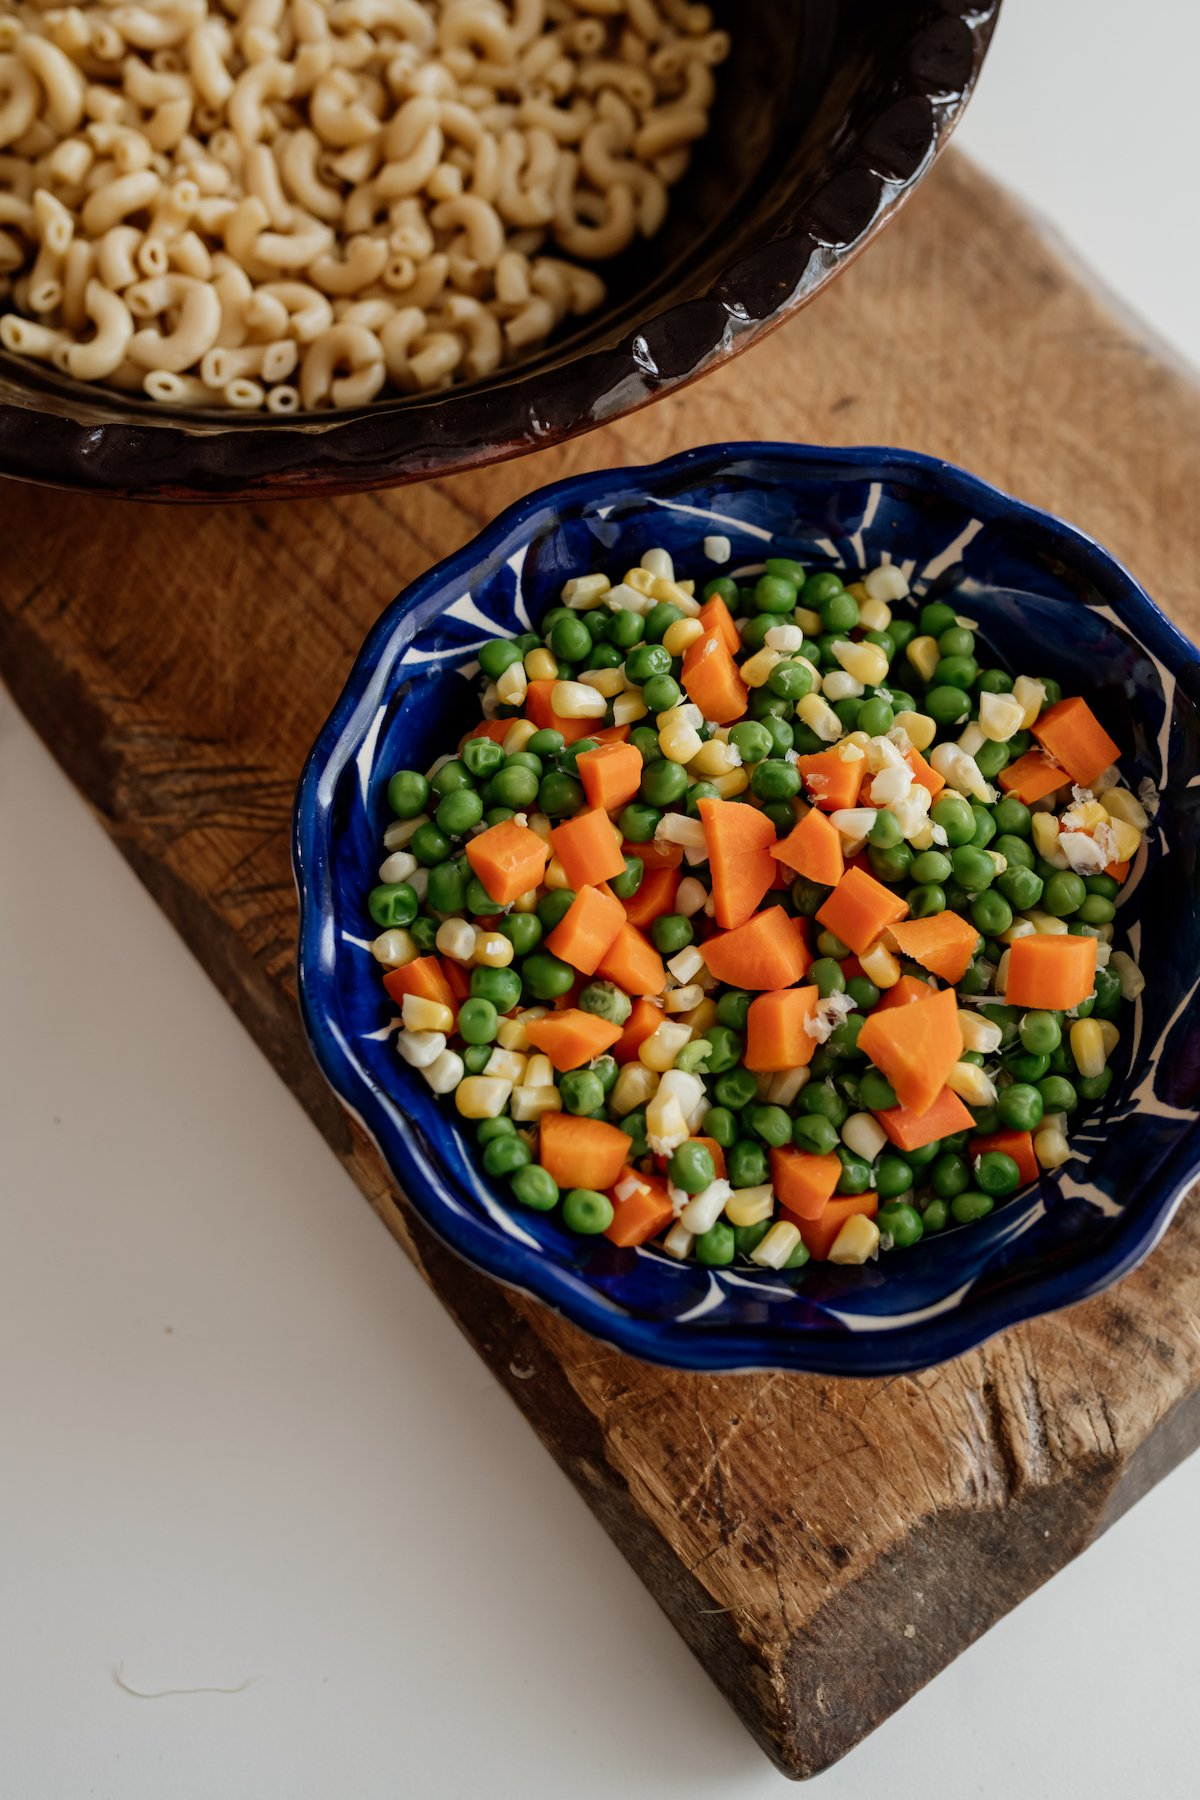 a Mexican blue bowl filled with cooked carrots, peas, and corn and cooked macaroni in a bowl in the background